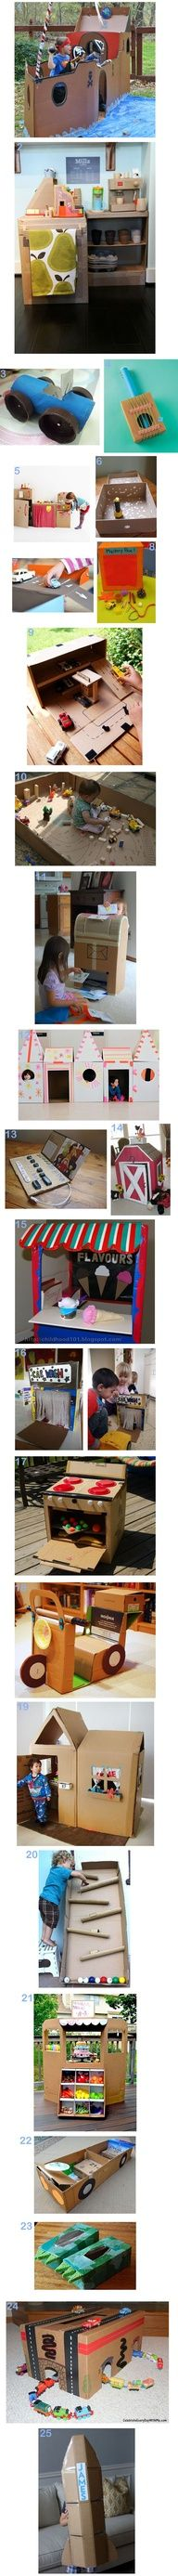 25 Fun Ideas for a Cardboard Box. a cardboard box is pretty much the funnest thing ever hands down